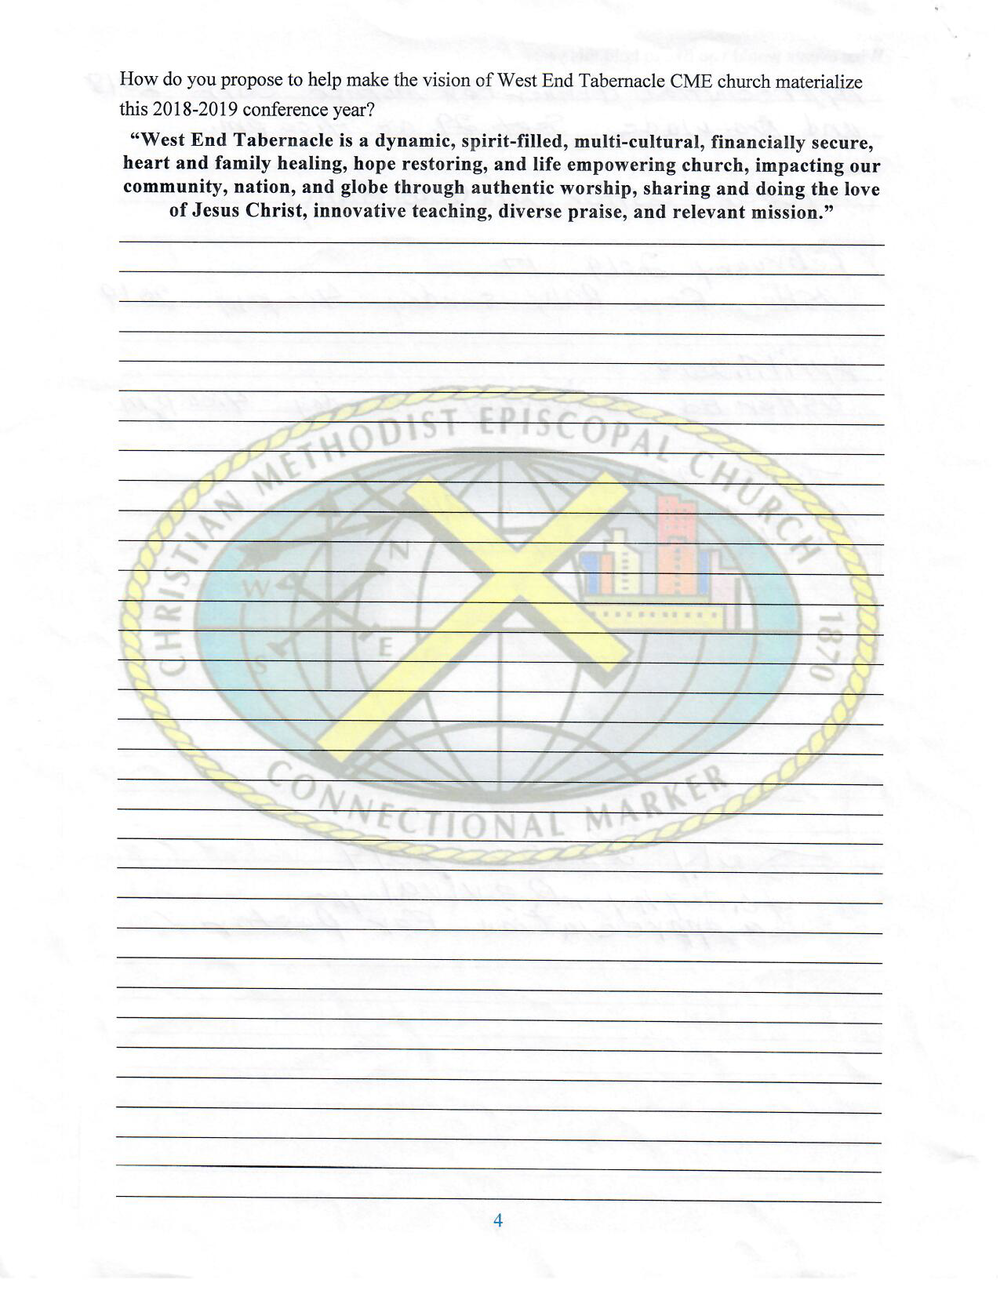 Usher Board Planning Report_Page_4.png